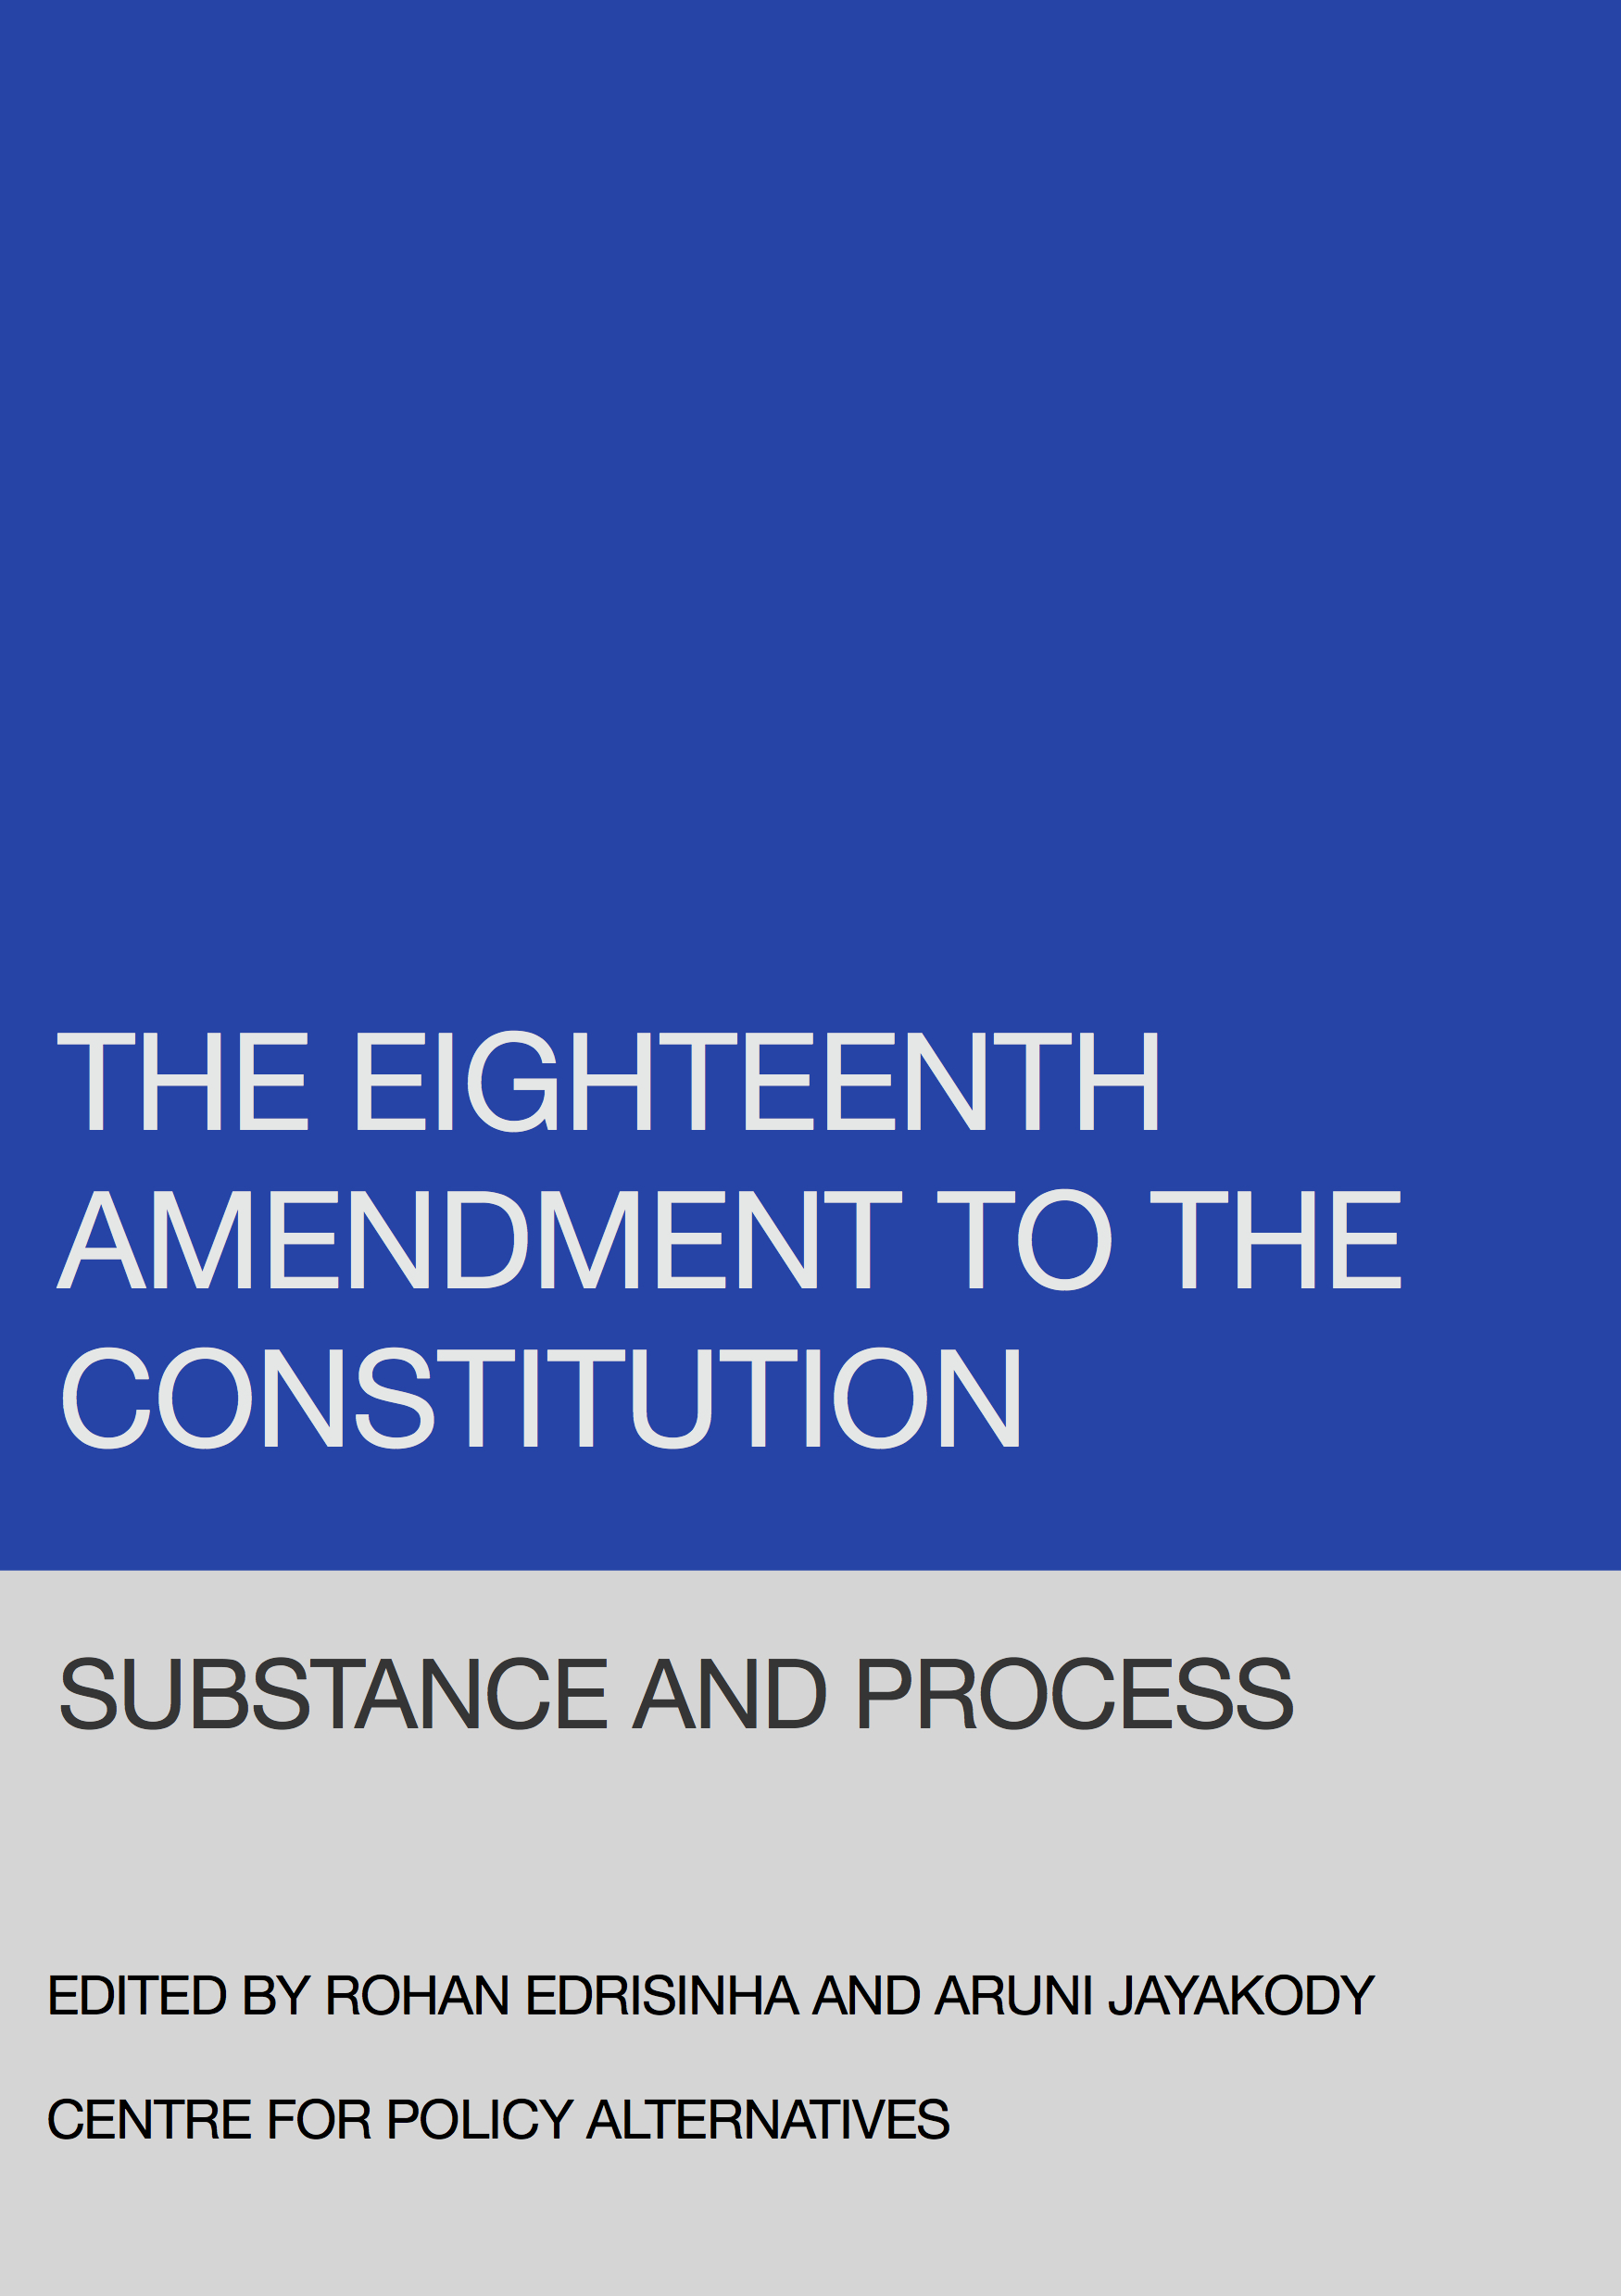 18th Amendment to the Constitution - Substance and Process